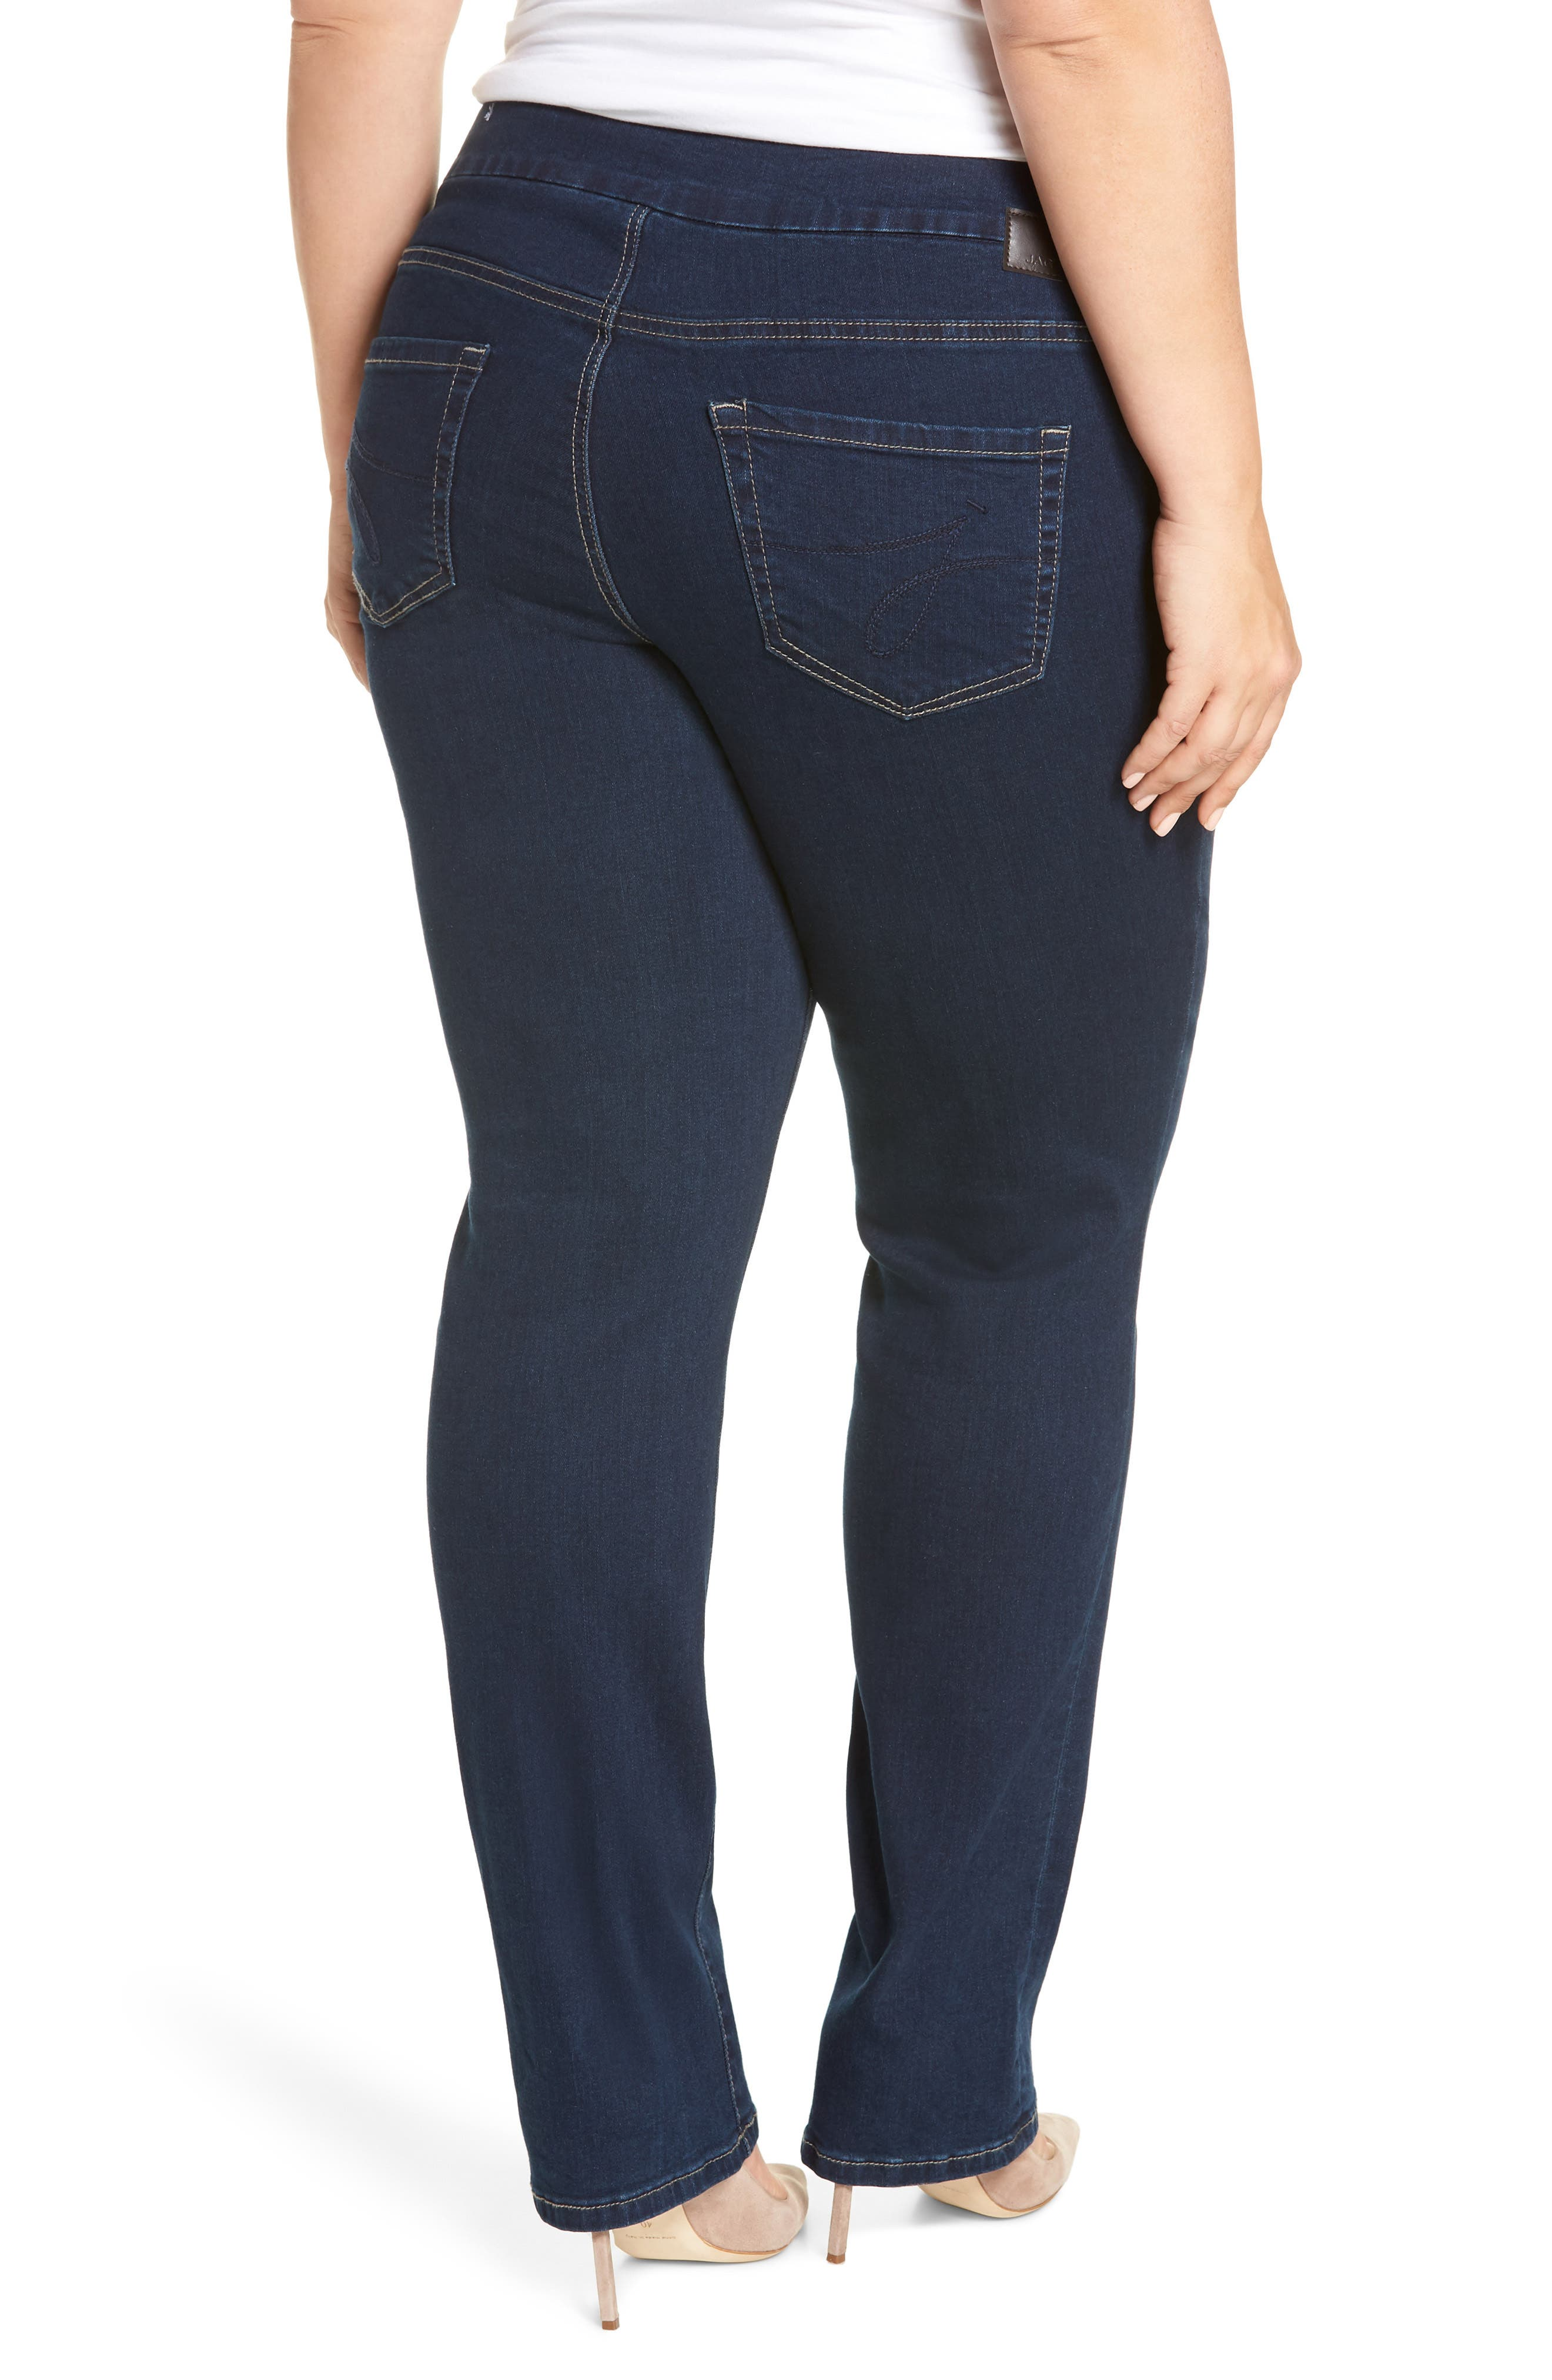 JAG JEANS, Paley Pull-On Bootcut Jeans, Alternate thumbnail 2, color, MED INDIGO